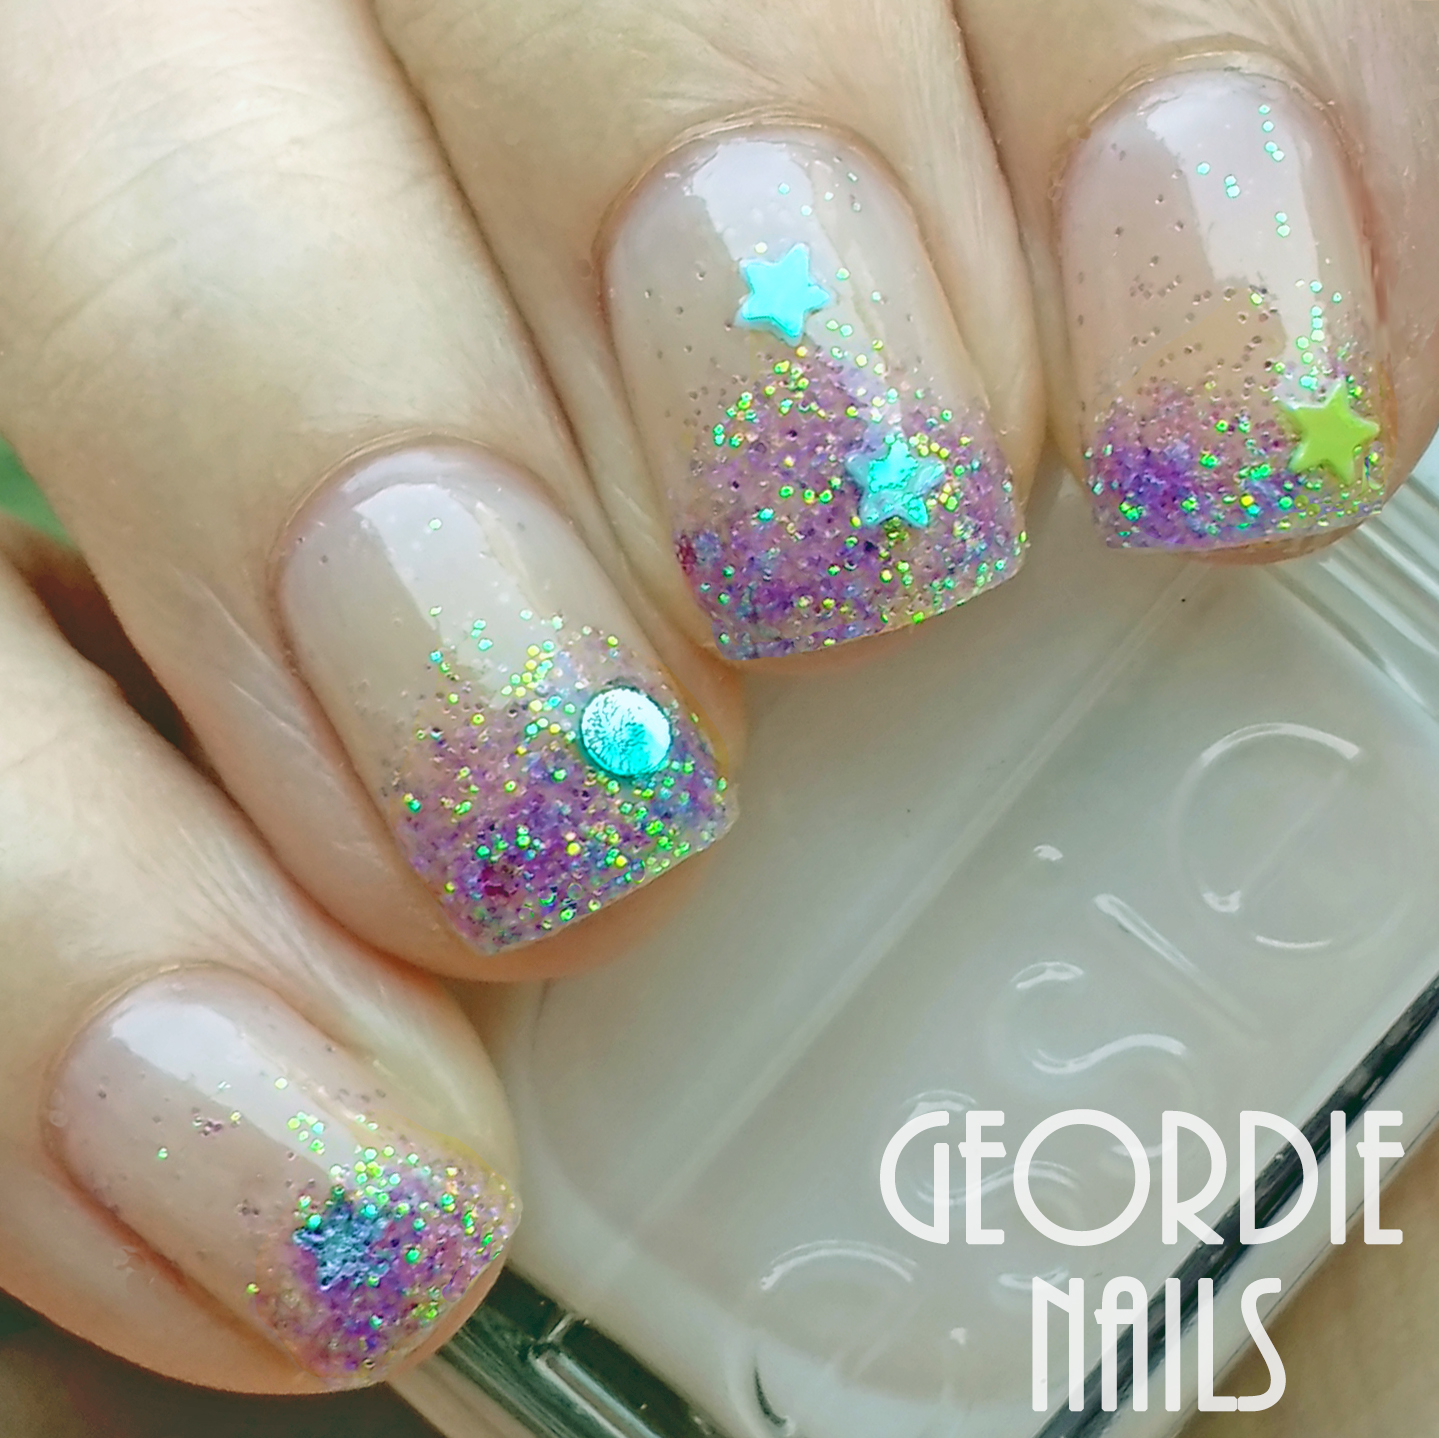 Geordie Nails Charlies Nail Art Glitter And Emojis